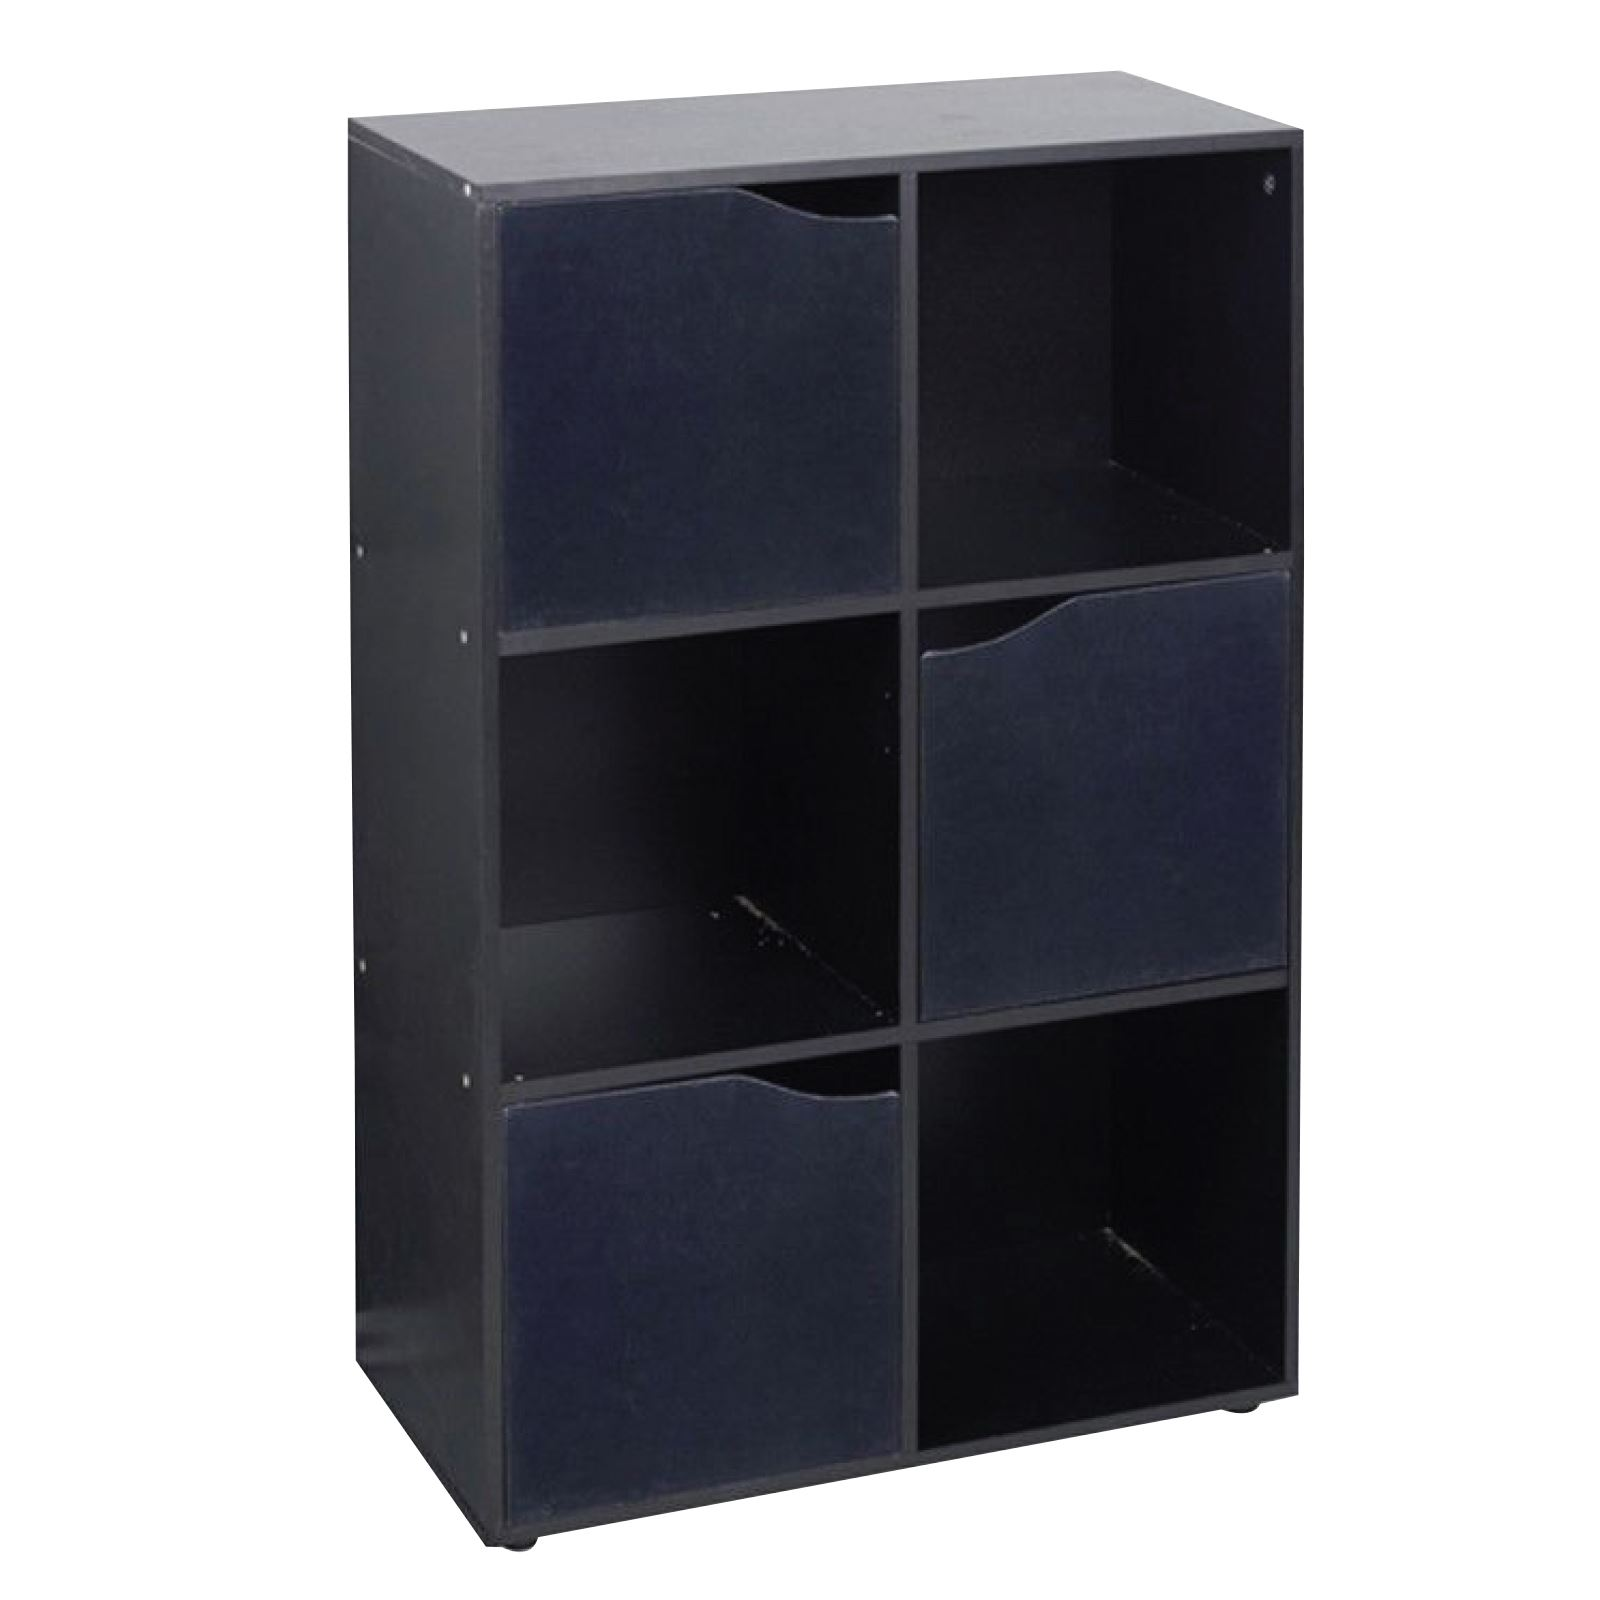 Cube Storage Shelves 4 6 9 Cube Wooden Storage Unit Bookcase Shelving Display